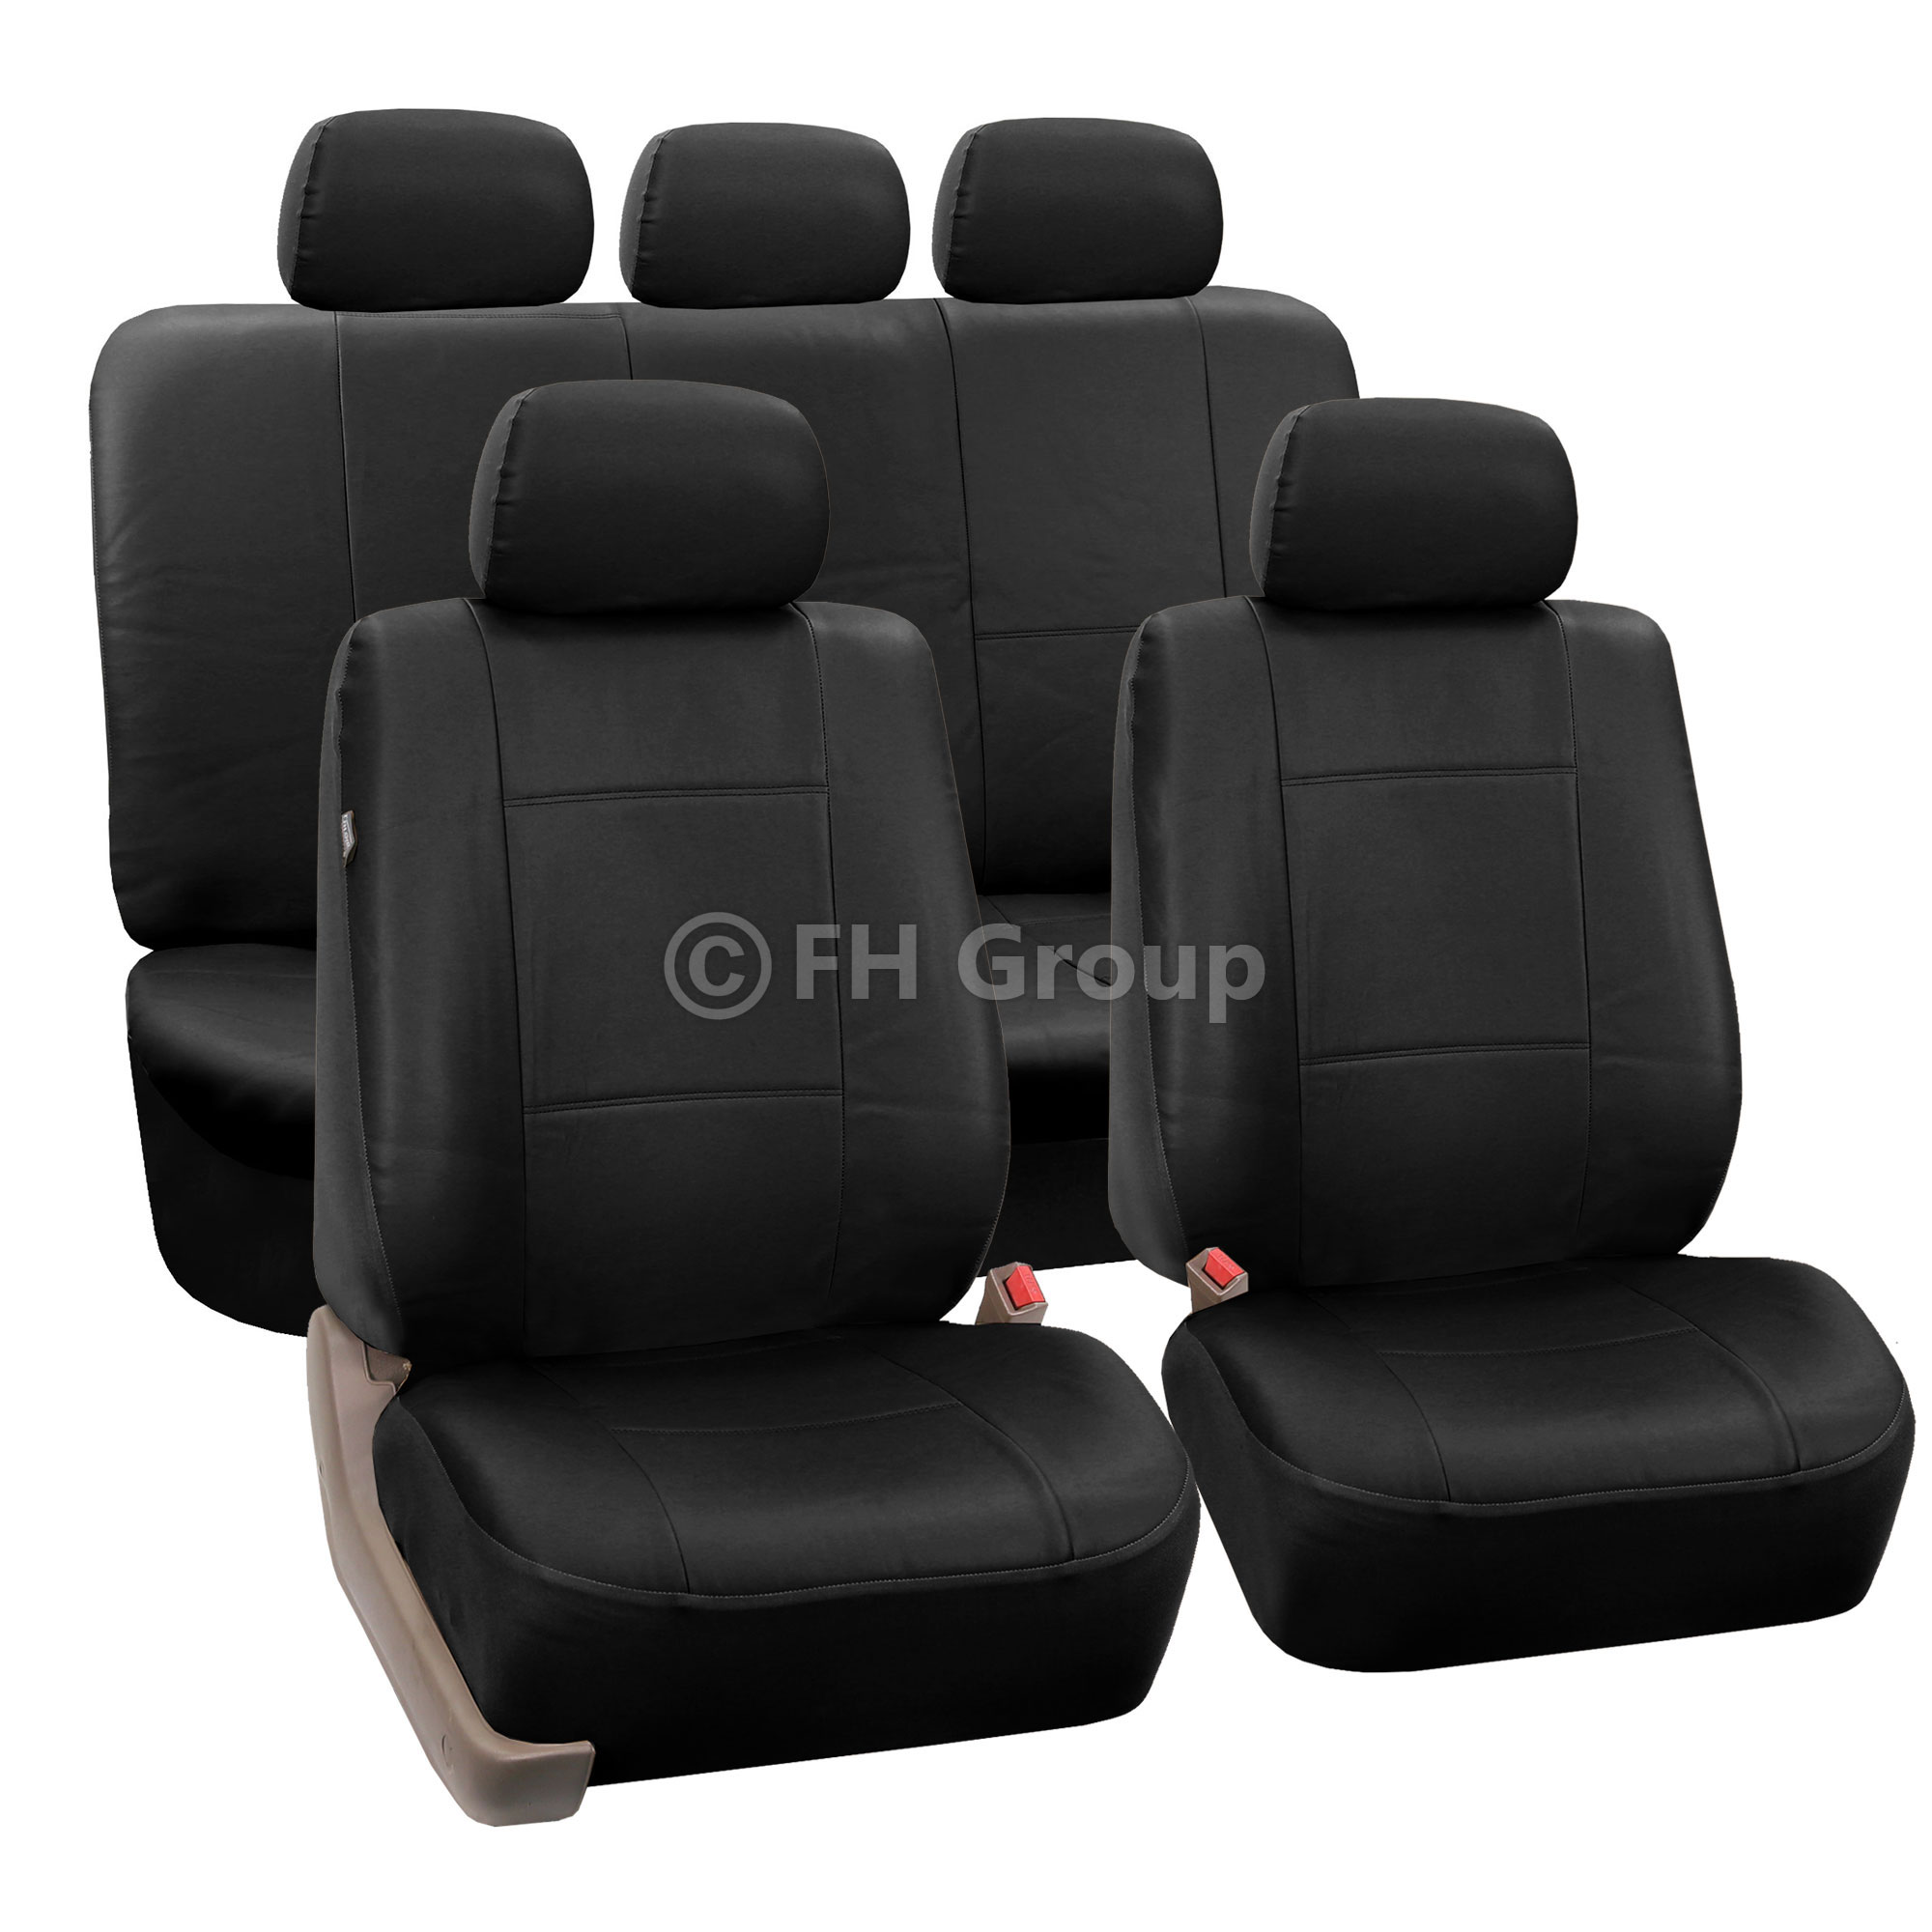 Superb img of  about PU Leather Car Seat Covers w. Carpet Floor Mats for Split Bench with #AC211F color and 2000x2000 pixels